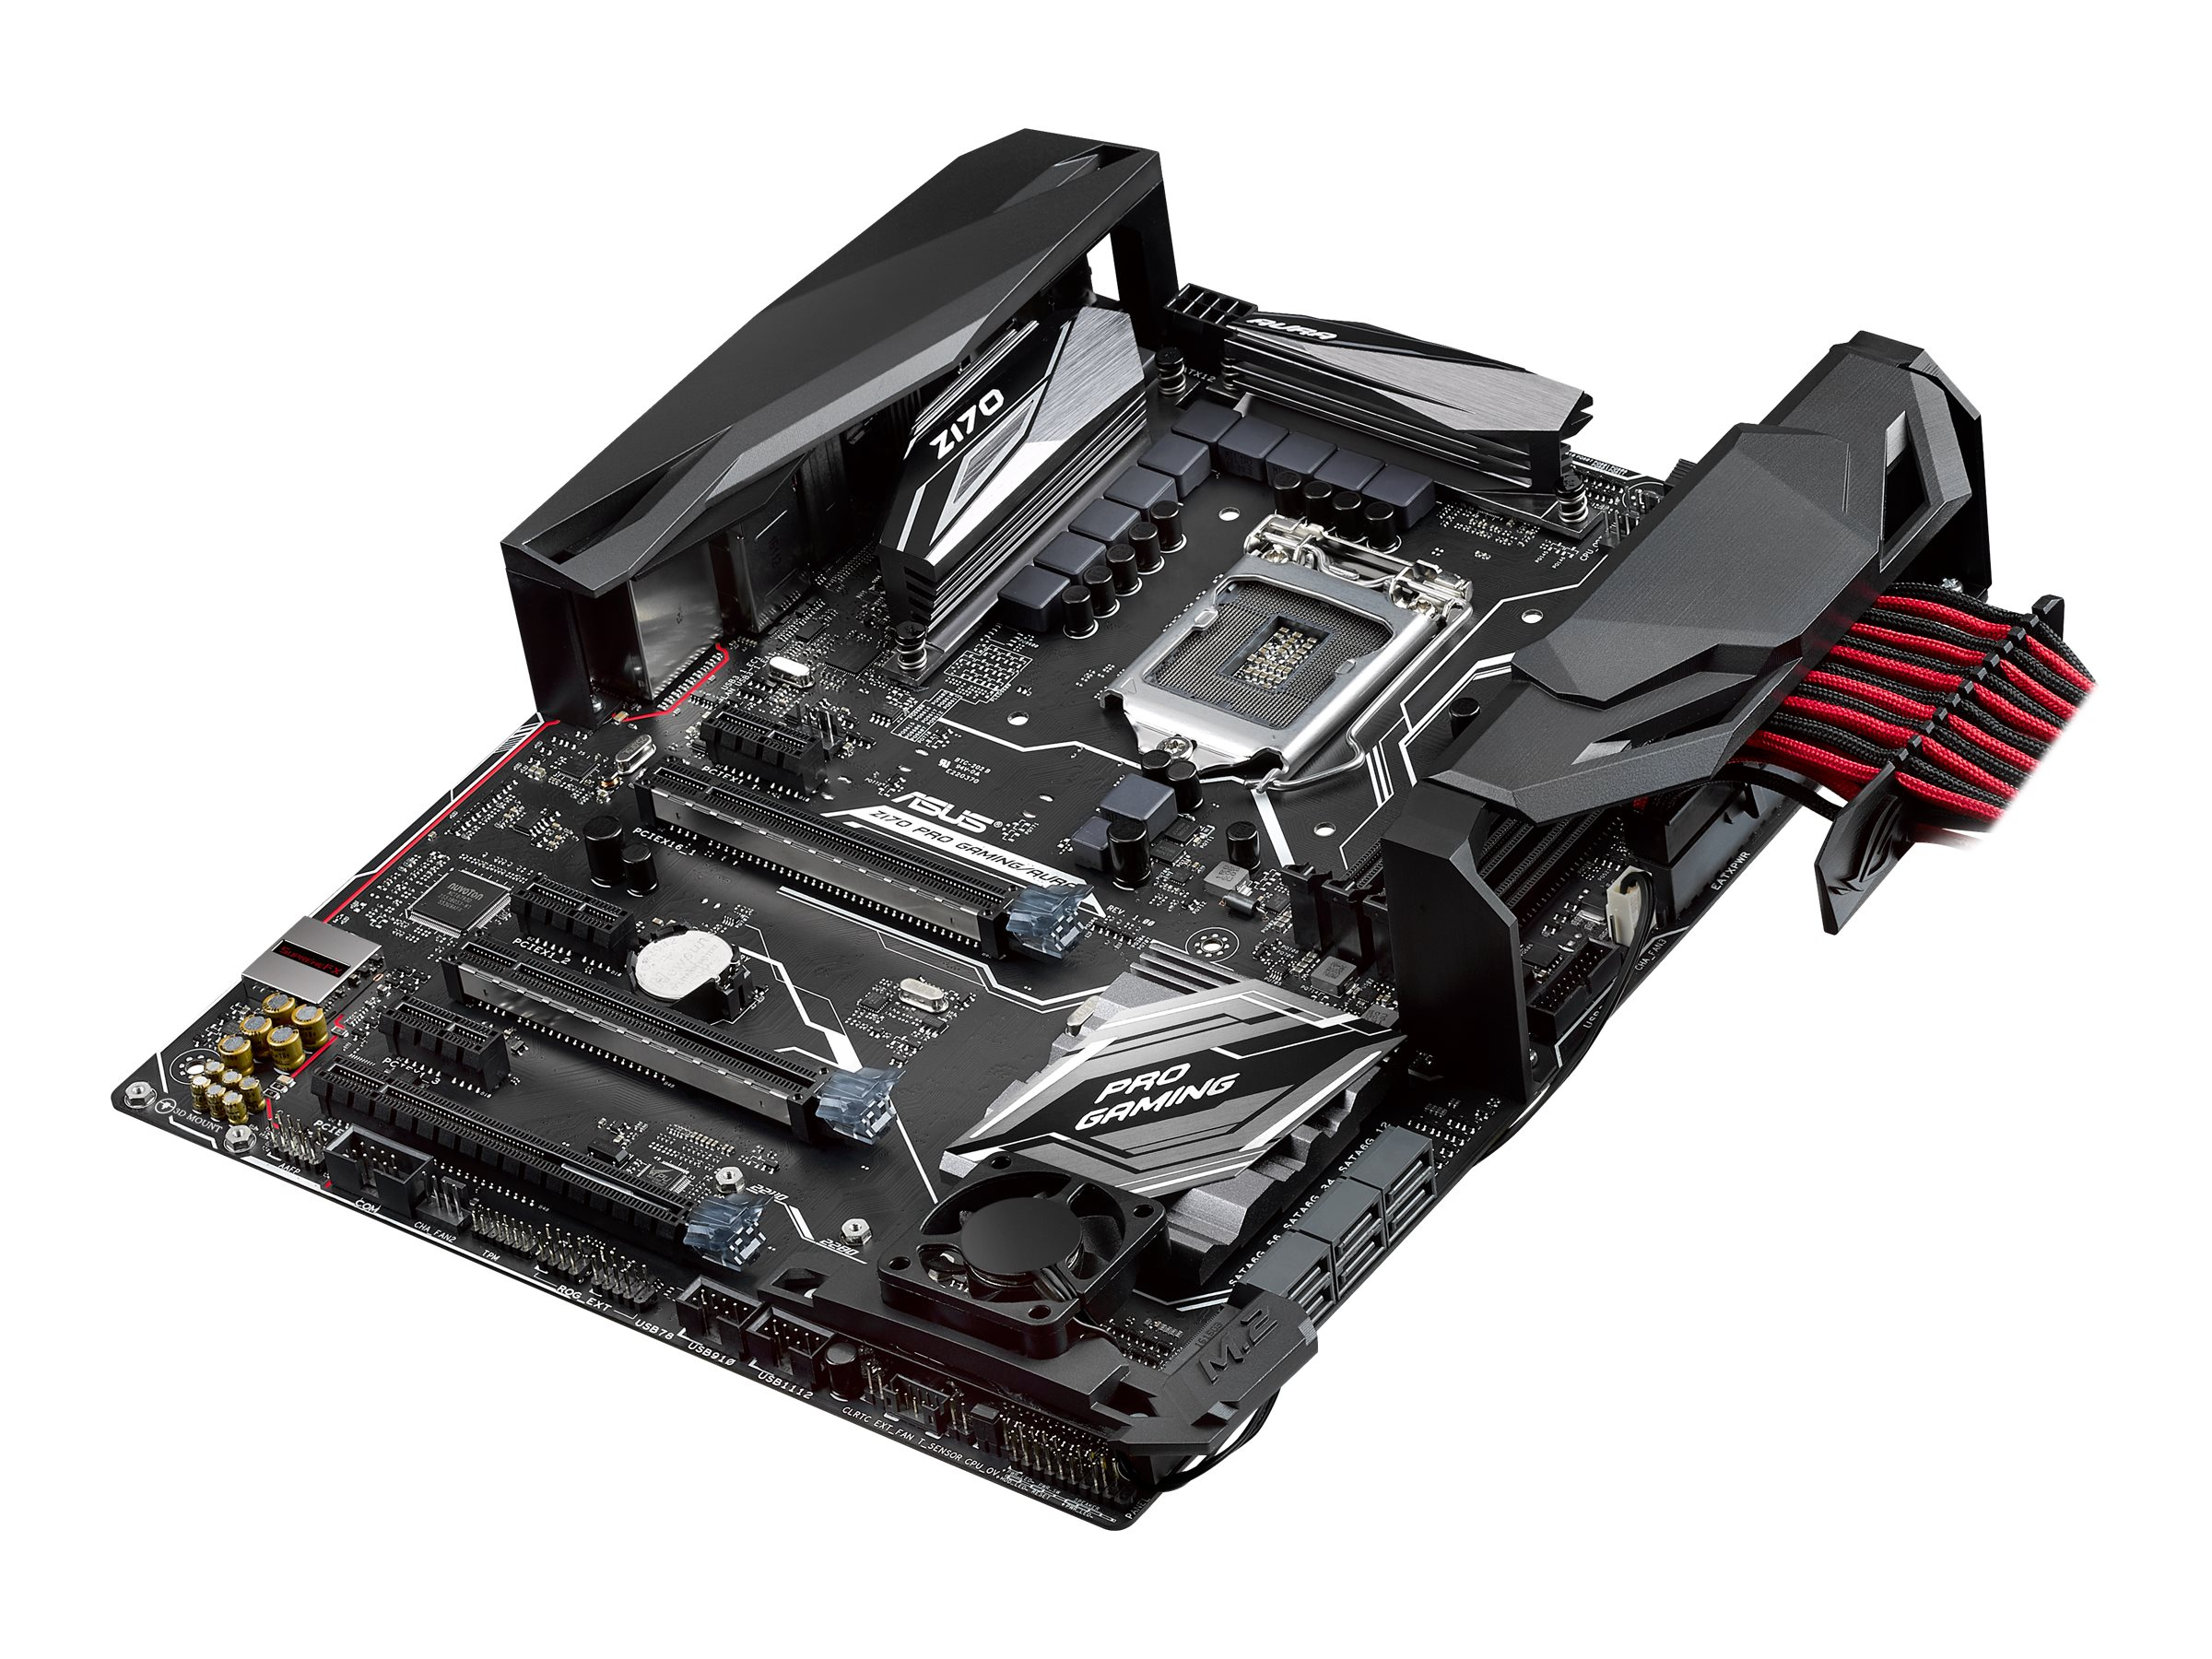 Asus Motherboard, Z170 Pro Gaming Aura Core i7 i5 i3 Family Max.64GB DDR4 6xSATA 6xPCIe GbE, Z170 PRO GAMING/AURA